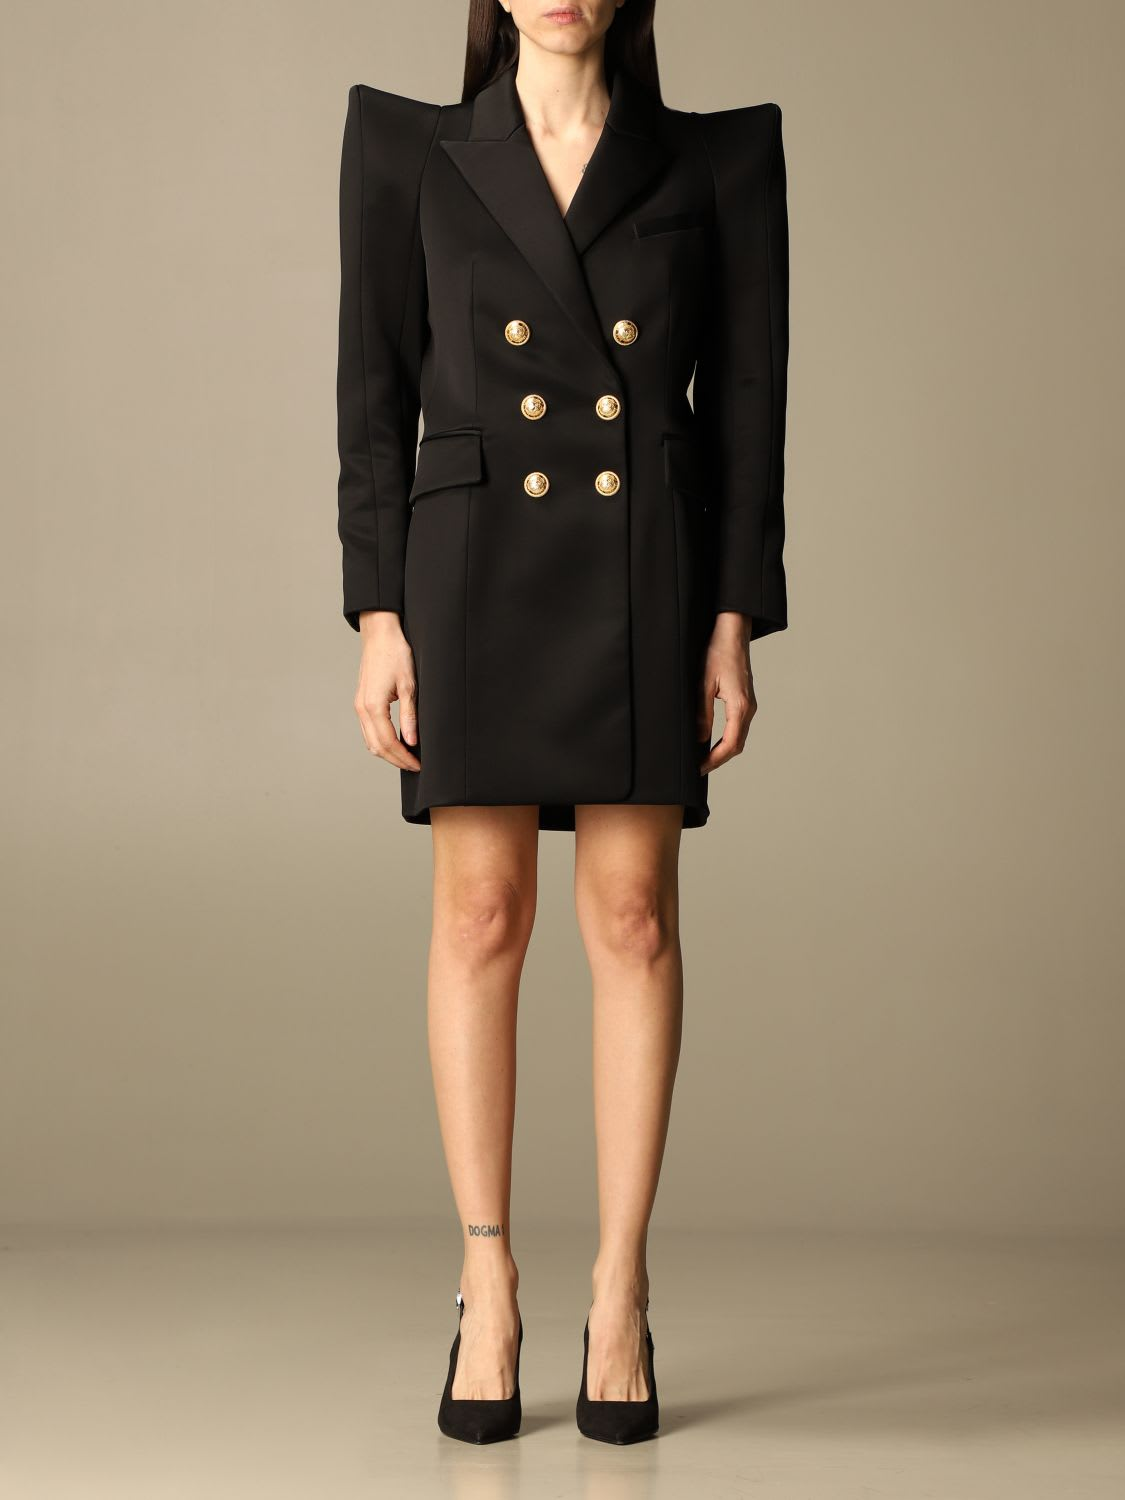 Buy Balmain Dress Double-breasted 6 Buttons Wide Shoulder online, shop Balmain with free shipping